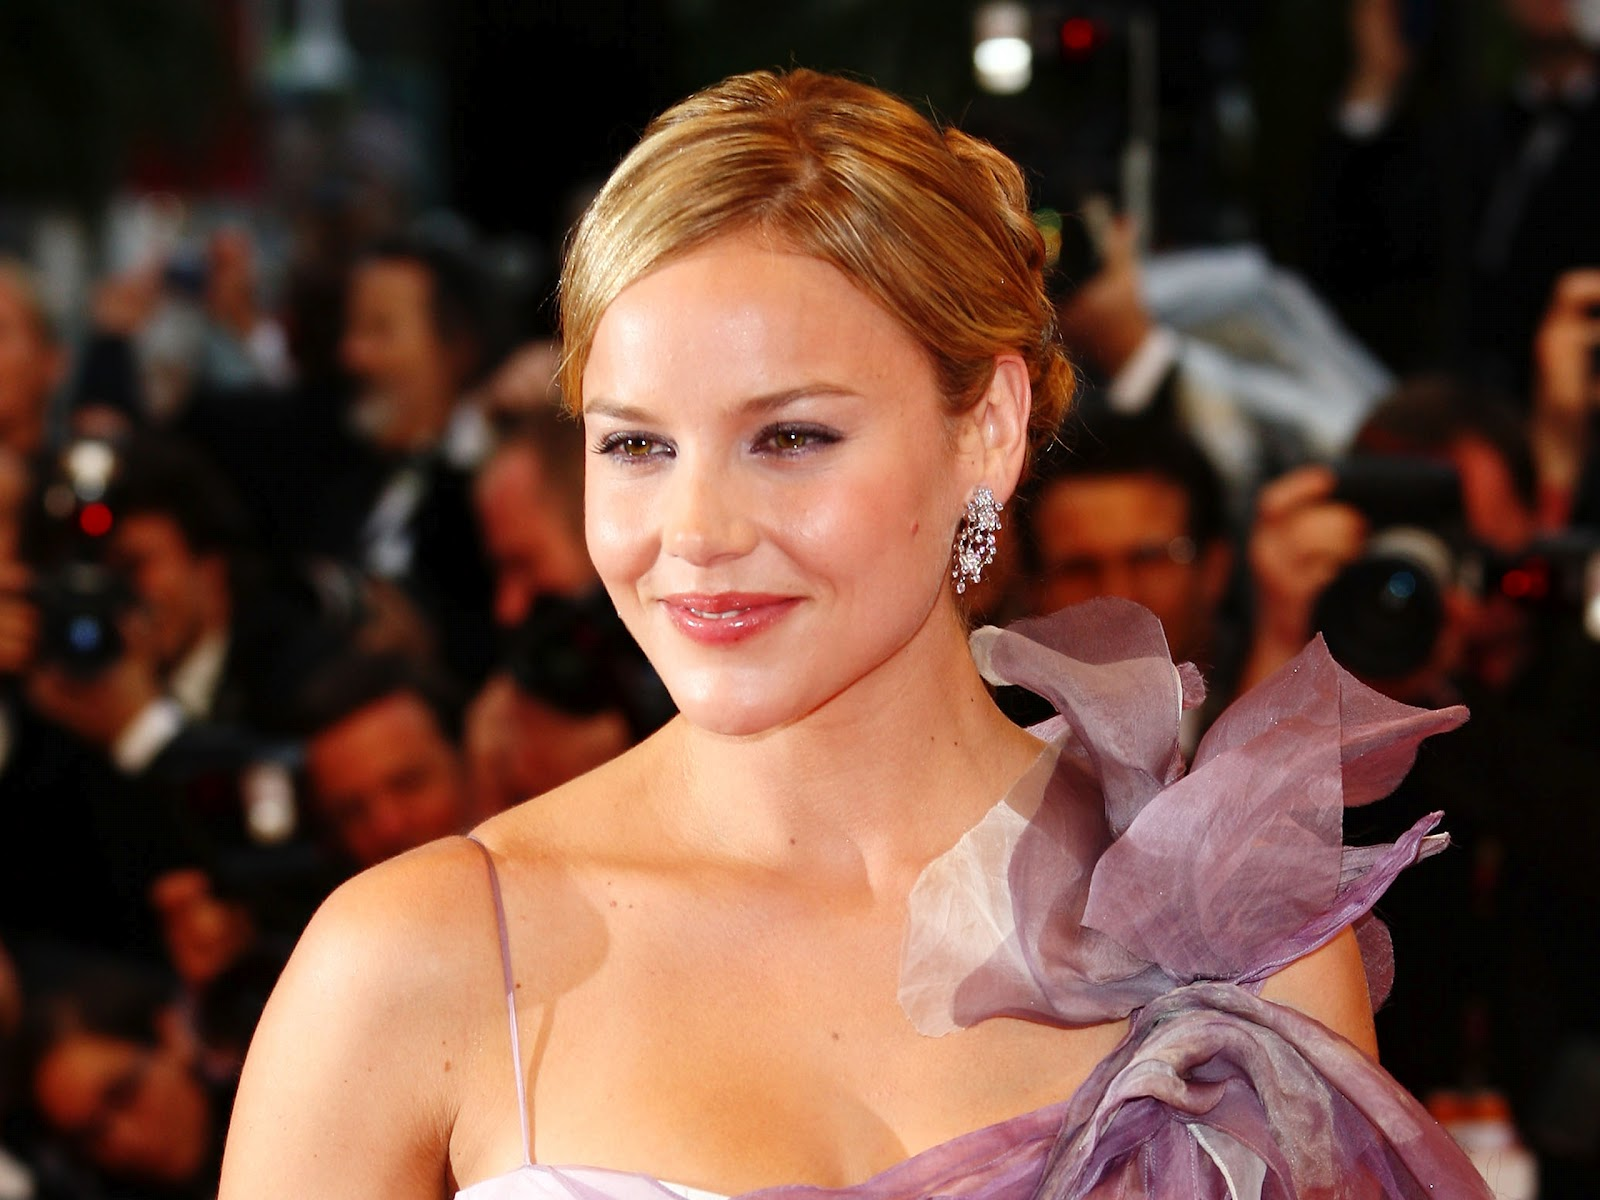 abbie cornish abbie cornish abbie cornish abbie cornish abbie cornish Abbie Cornish